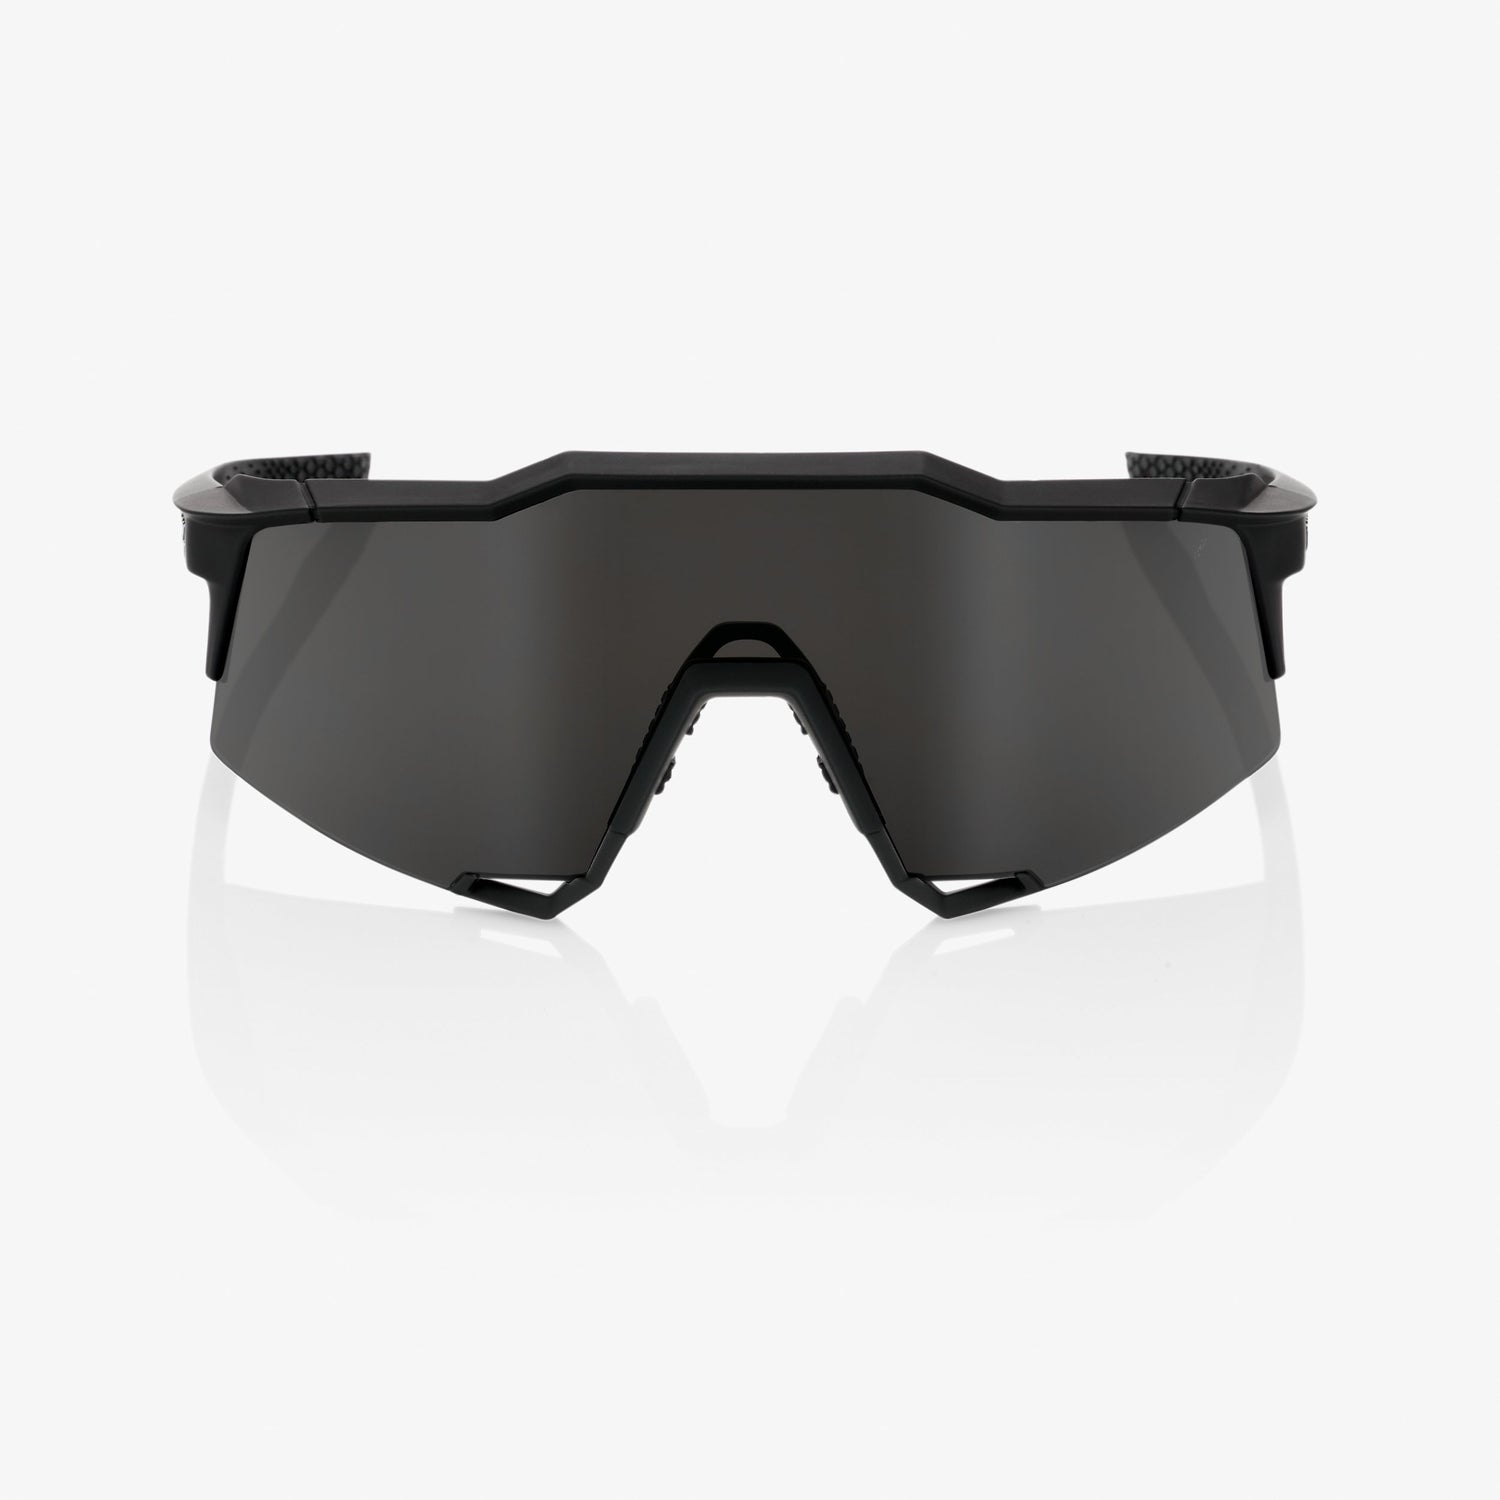 SPEEDCRAFT - Soft Tact Black -Smoke Lens